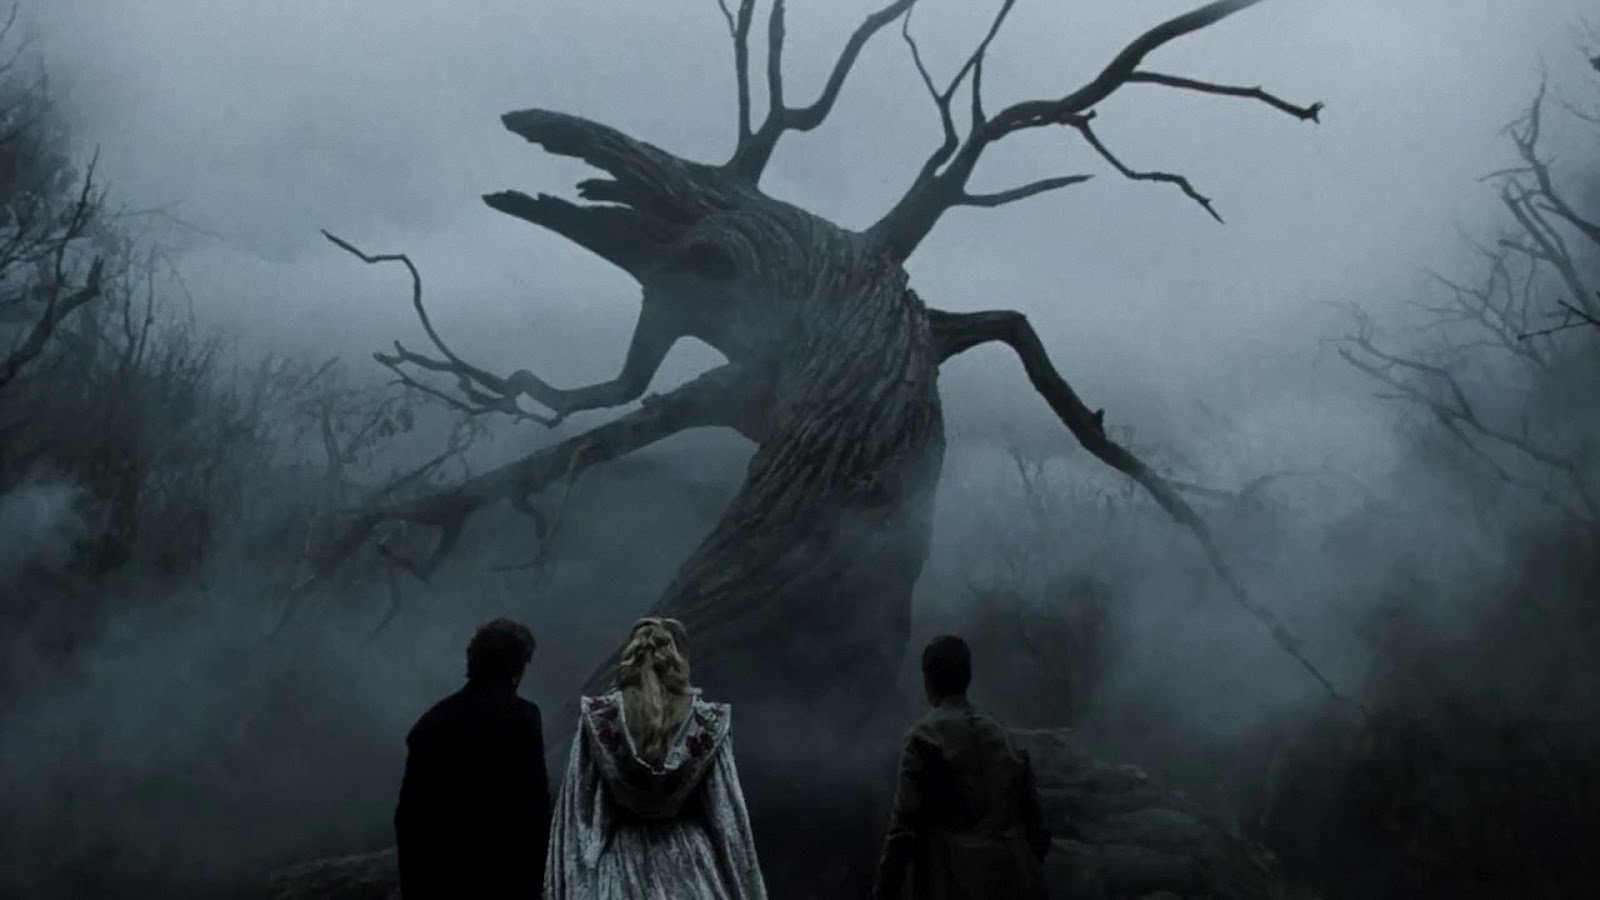 Una scena de Il mistero di Sleepy Hollow (1999)